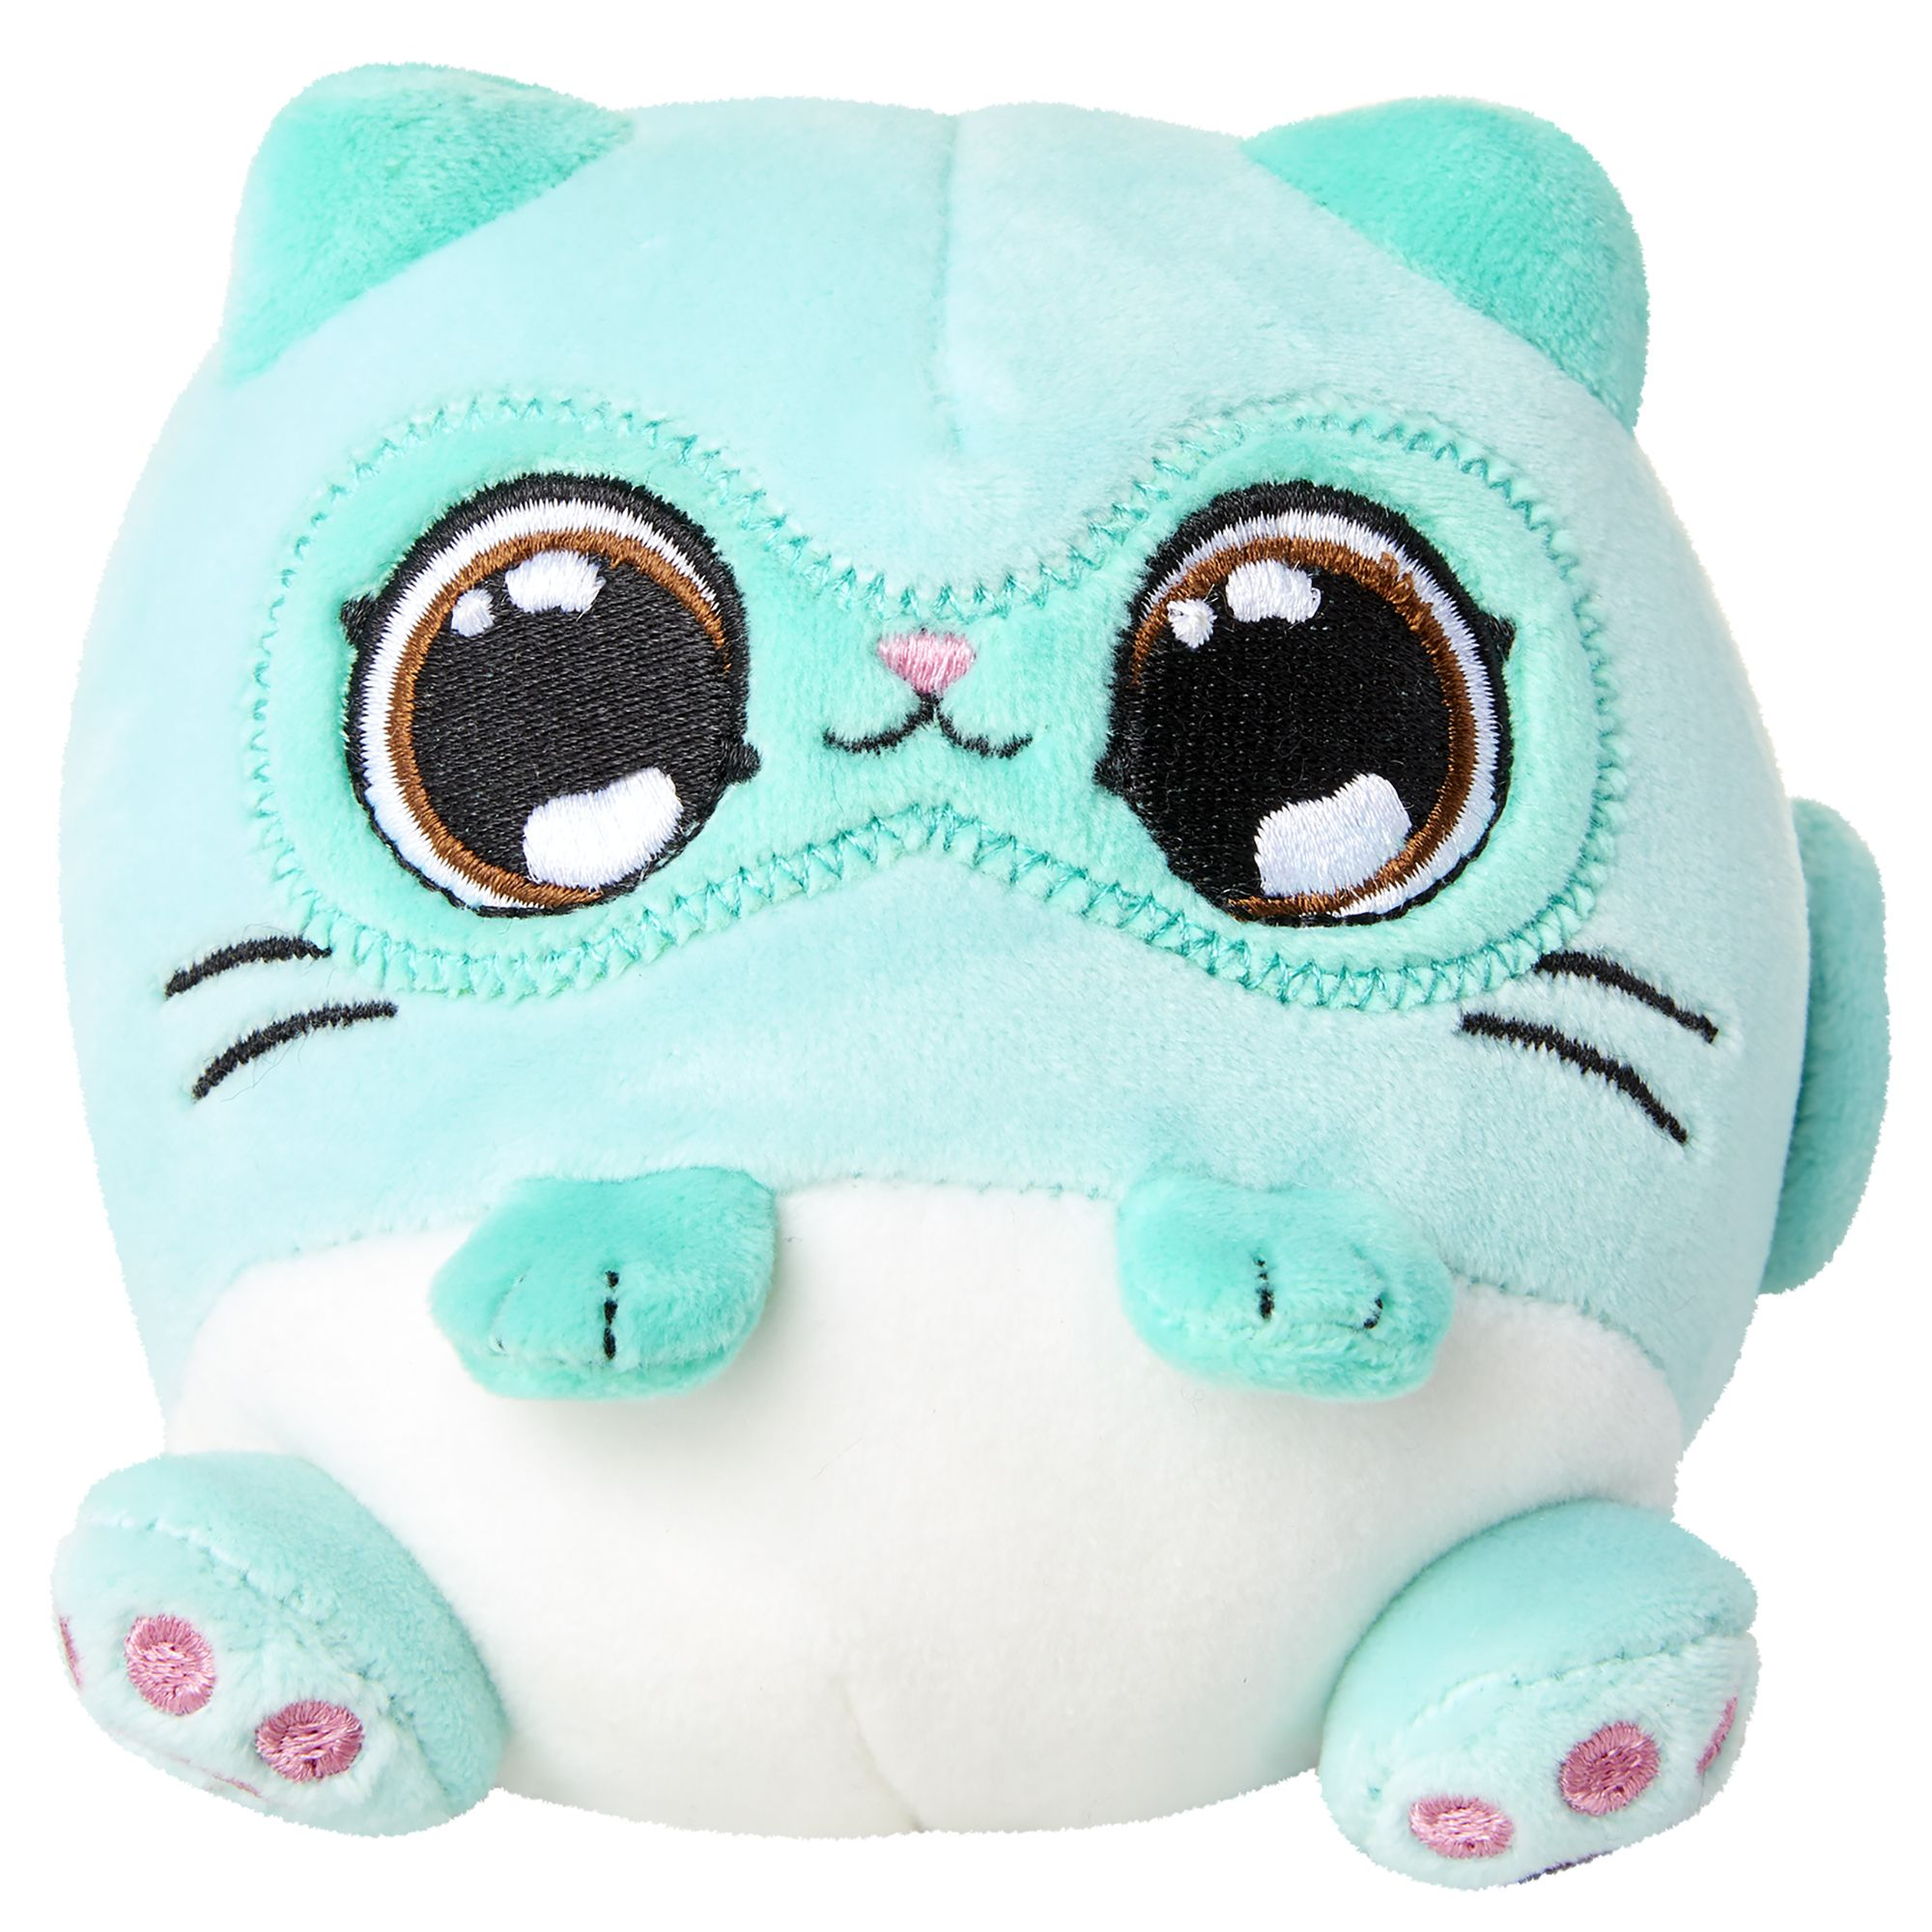 Pin By Nat On New Stuff In 2020 Kitten Plush Cute Plush